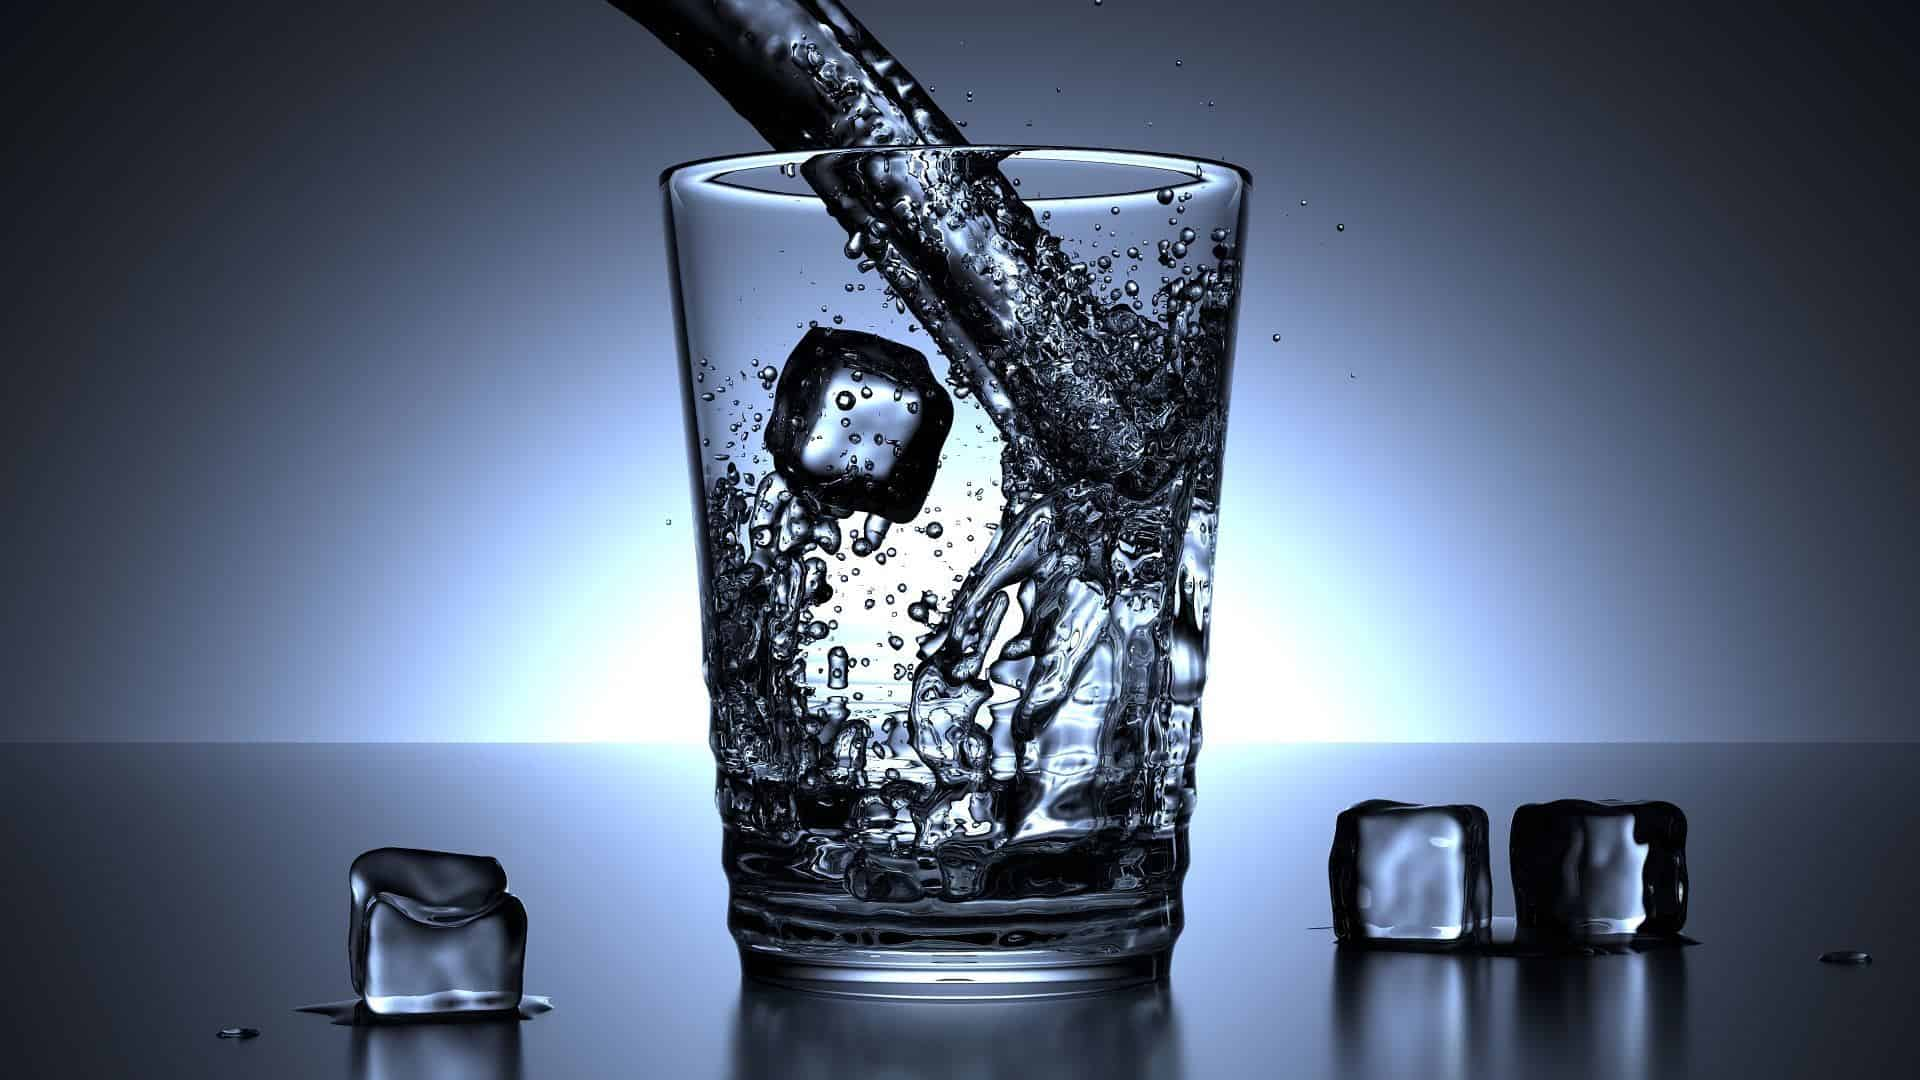 Water effectively suppresses appetite